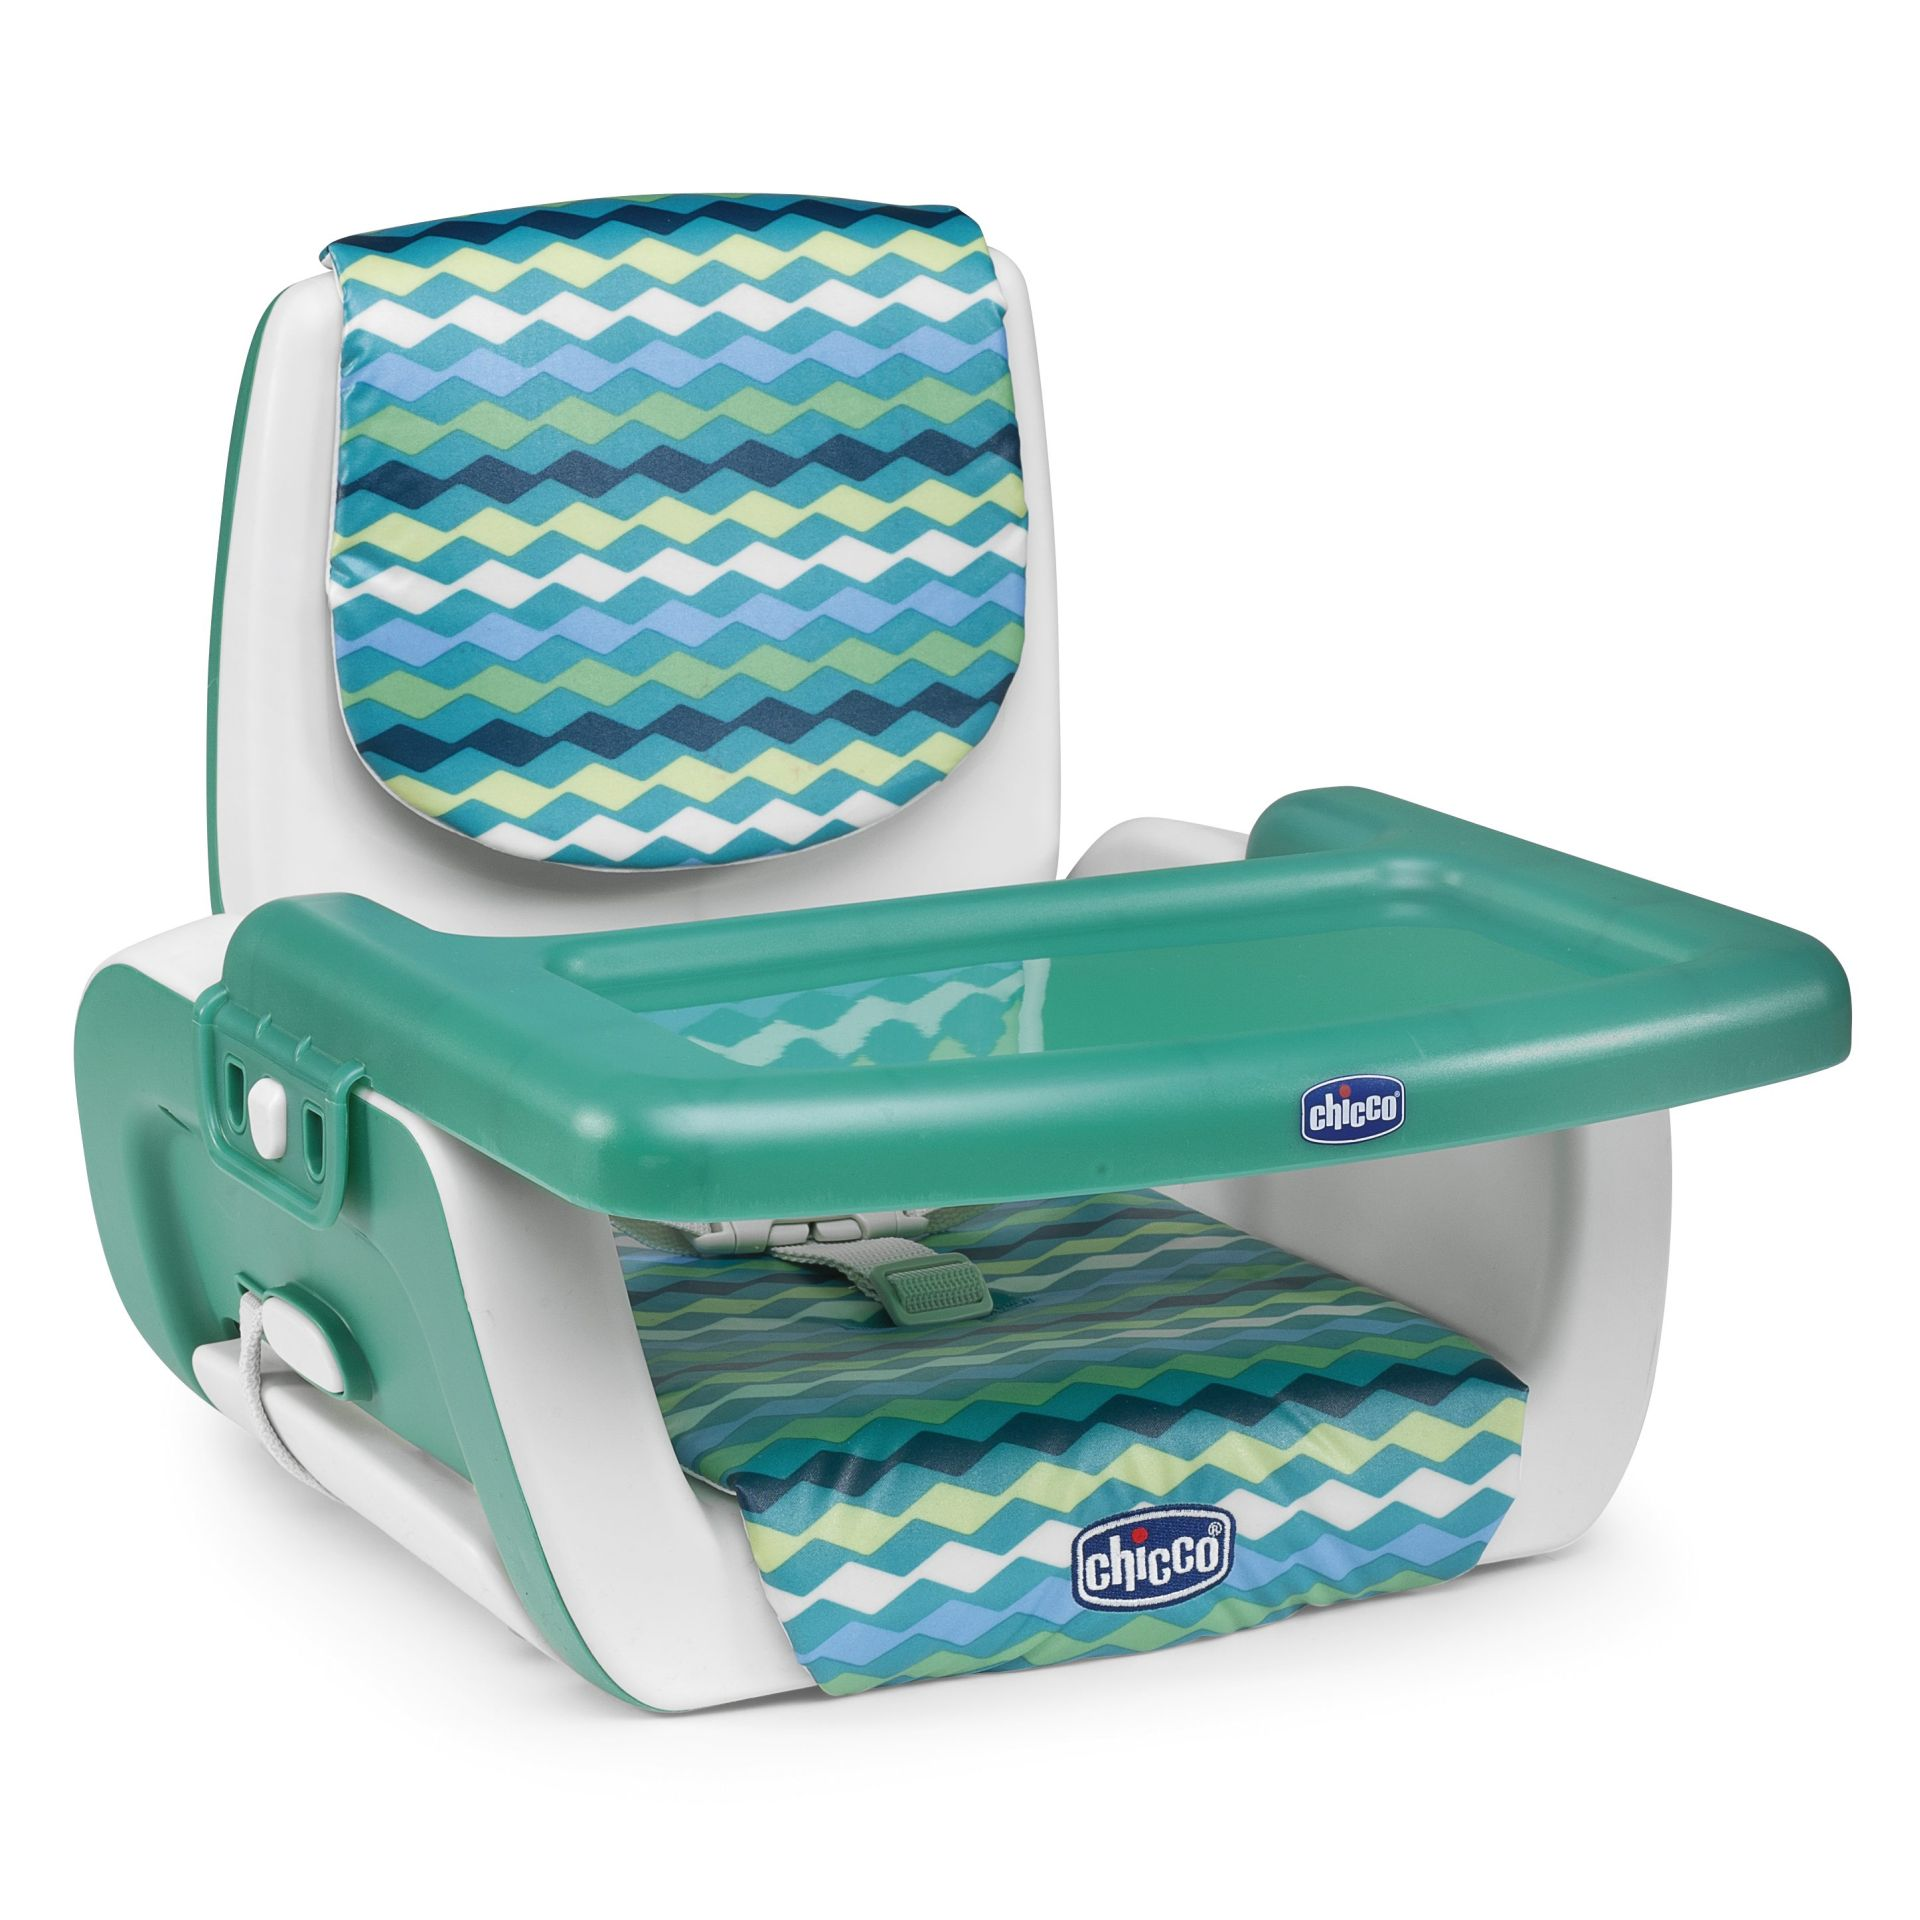 chicco booster seat mode 2018 mars buy at kidsroom living